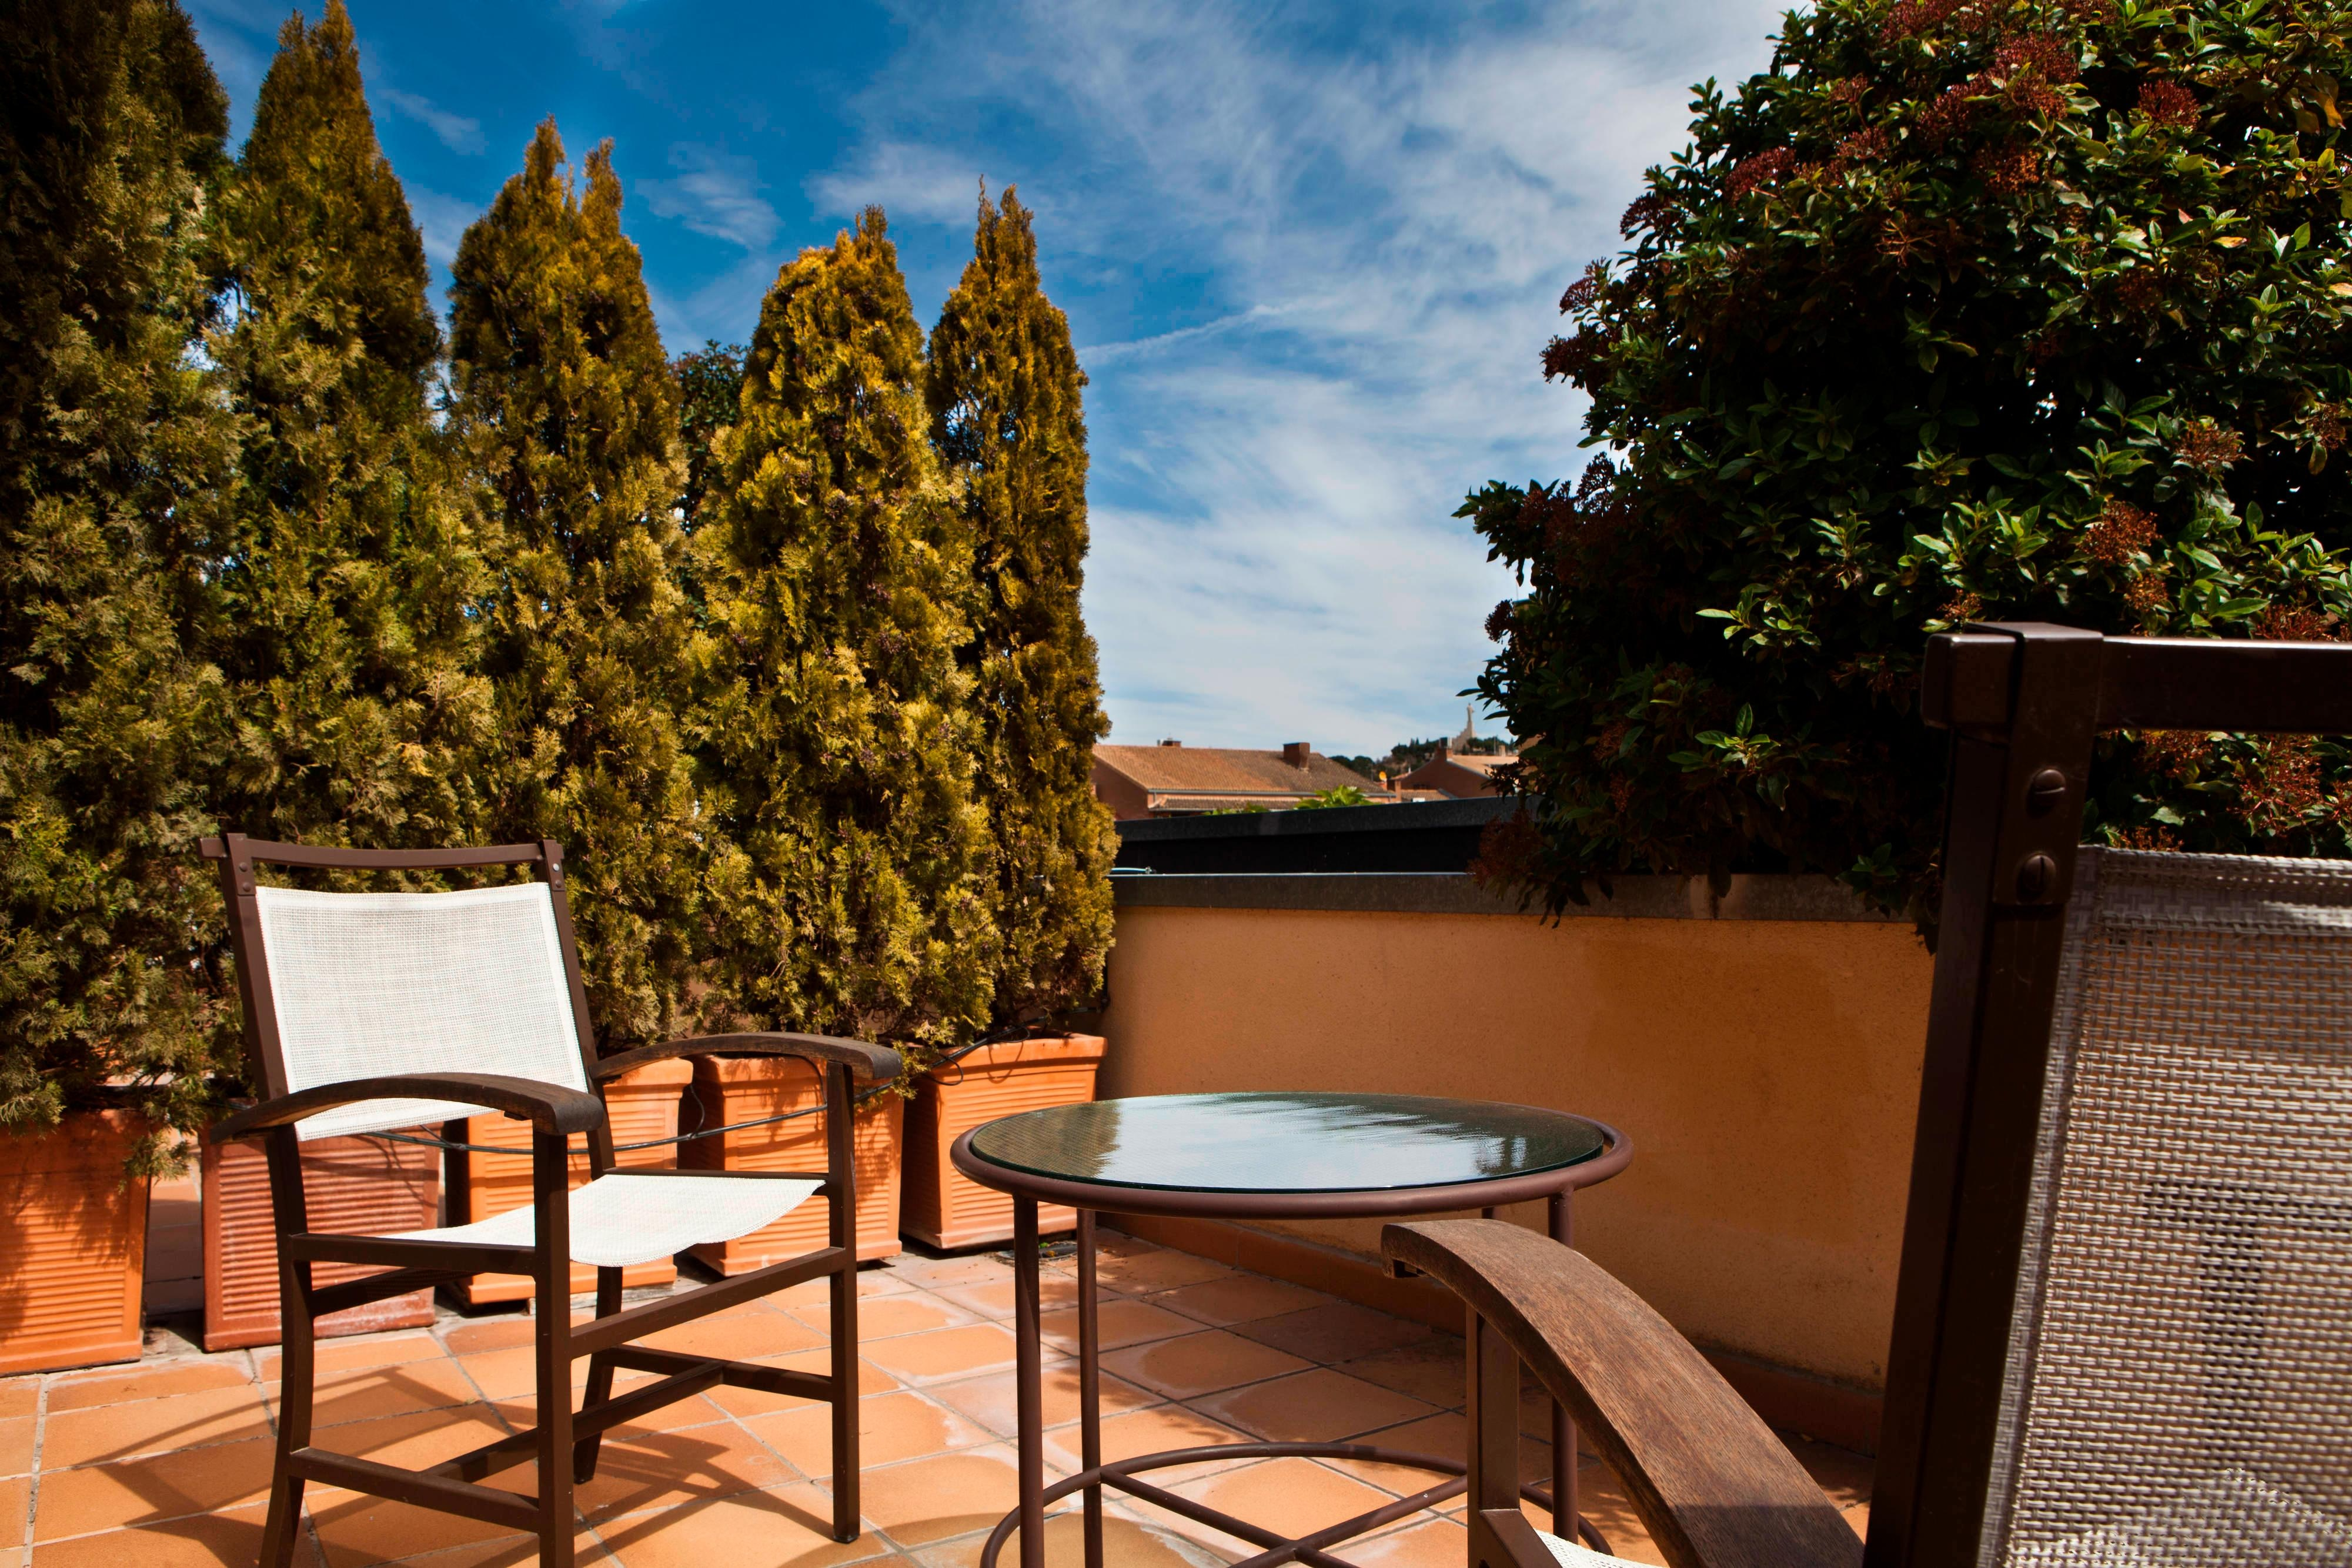 hotel terrace in tudela